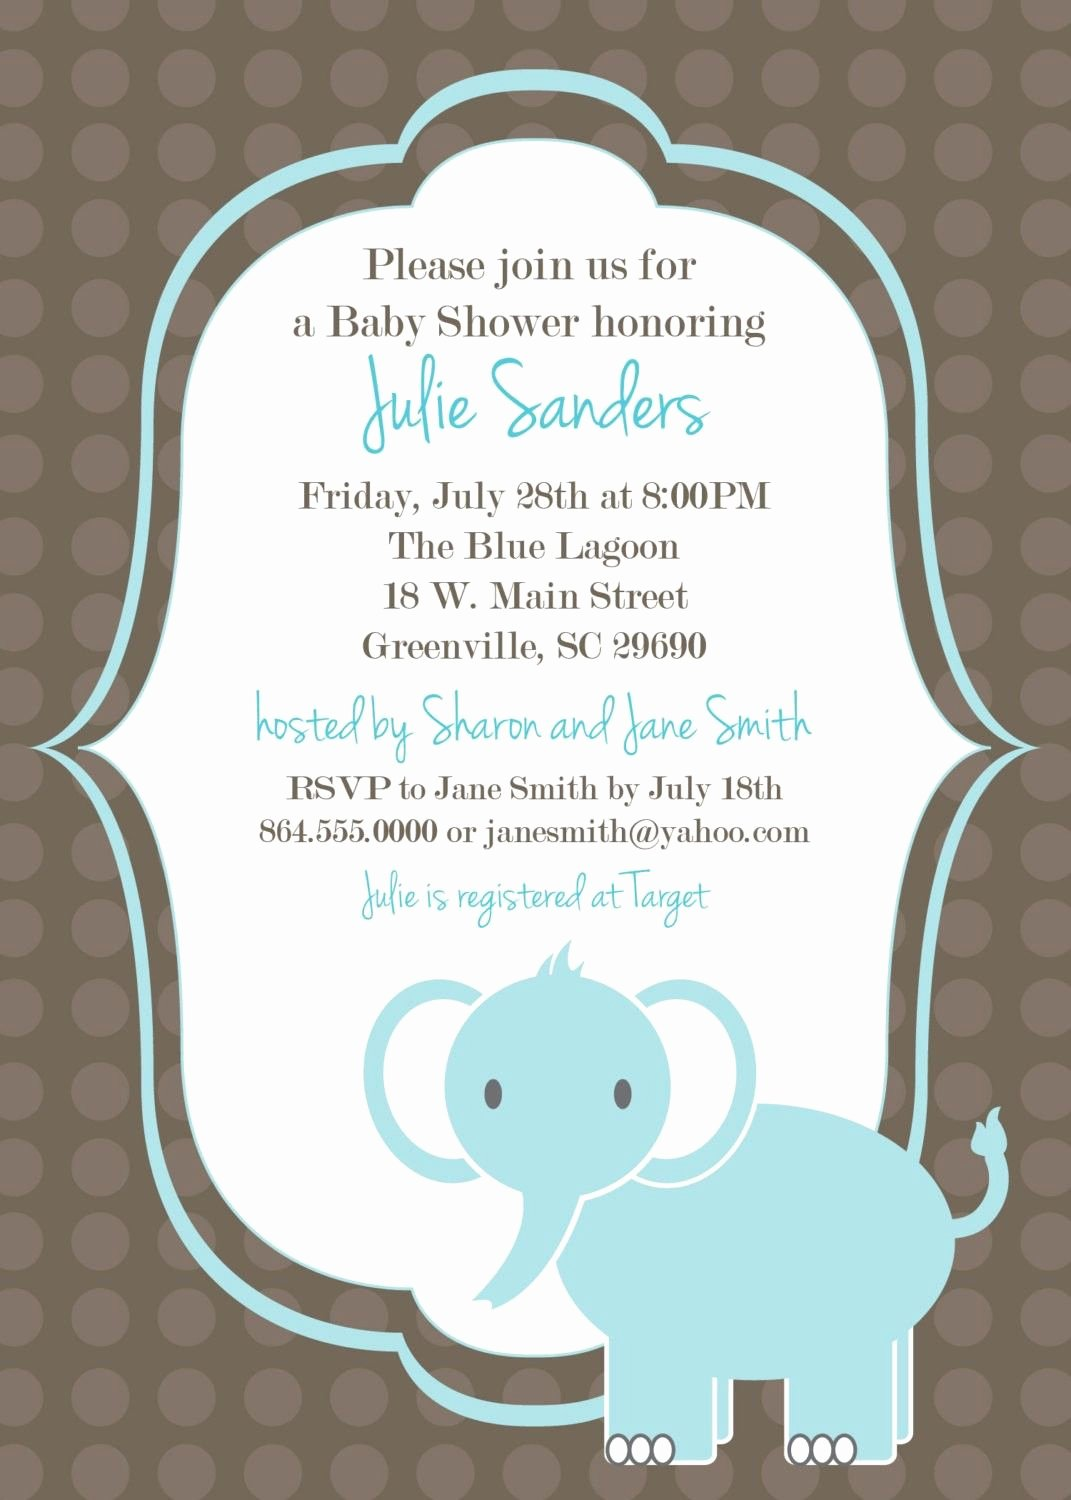 Baby Shower Template Free Best Of Download Free Template Got the Free Baby Shower